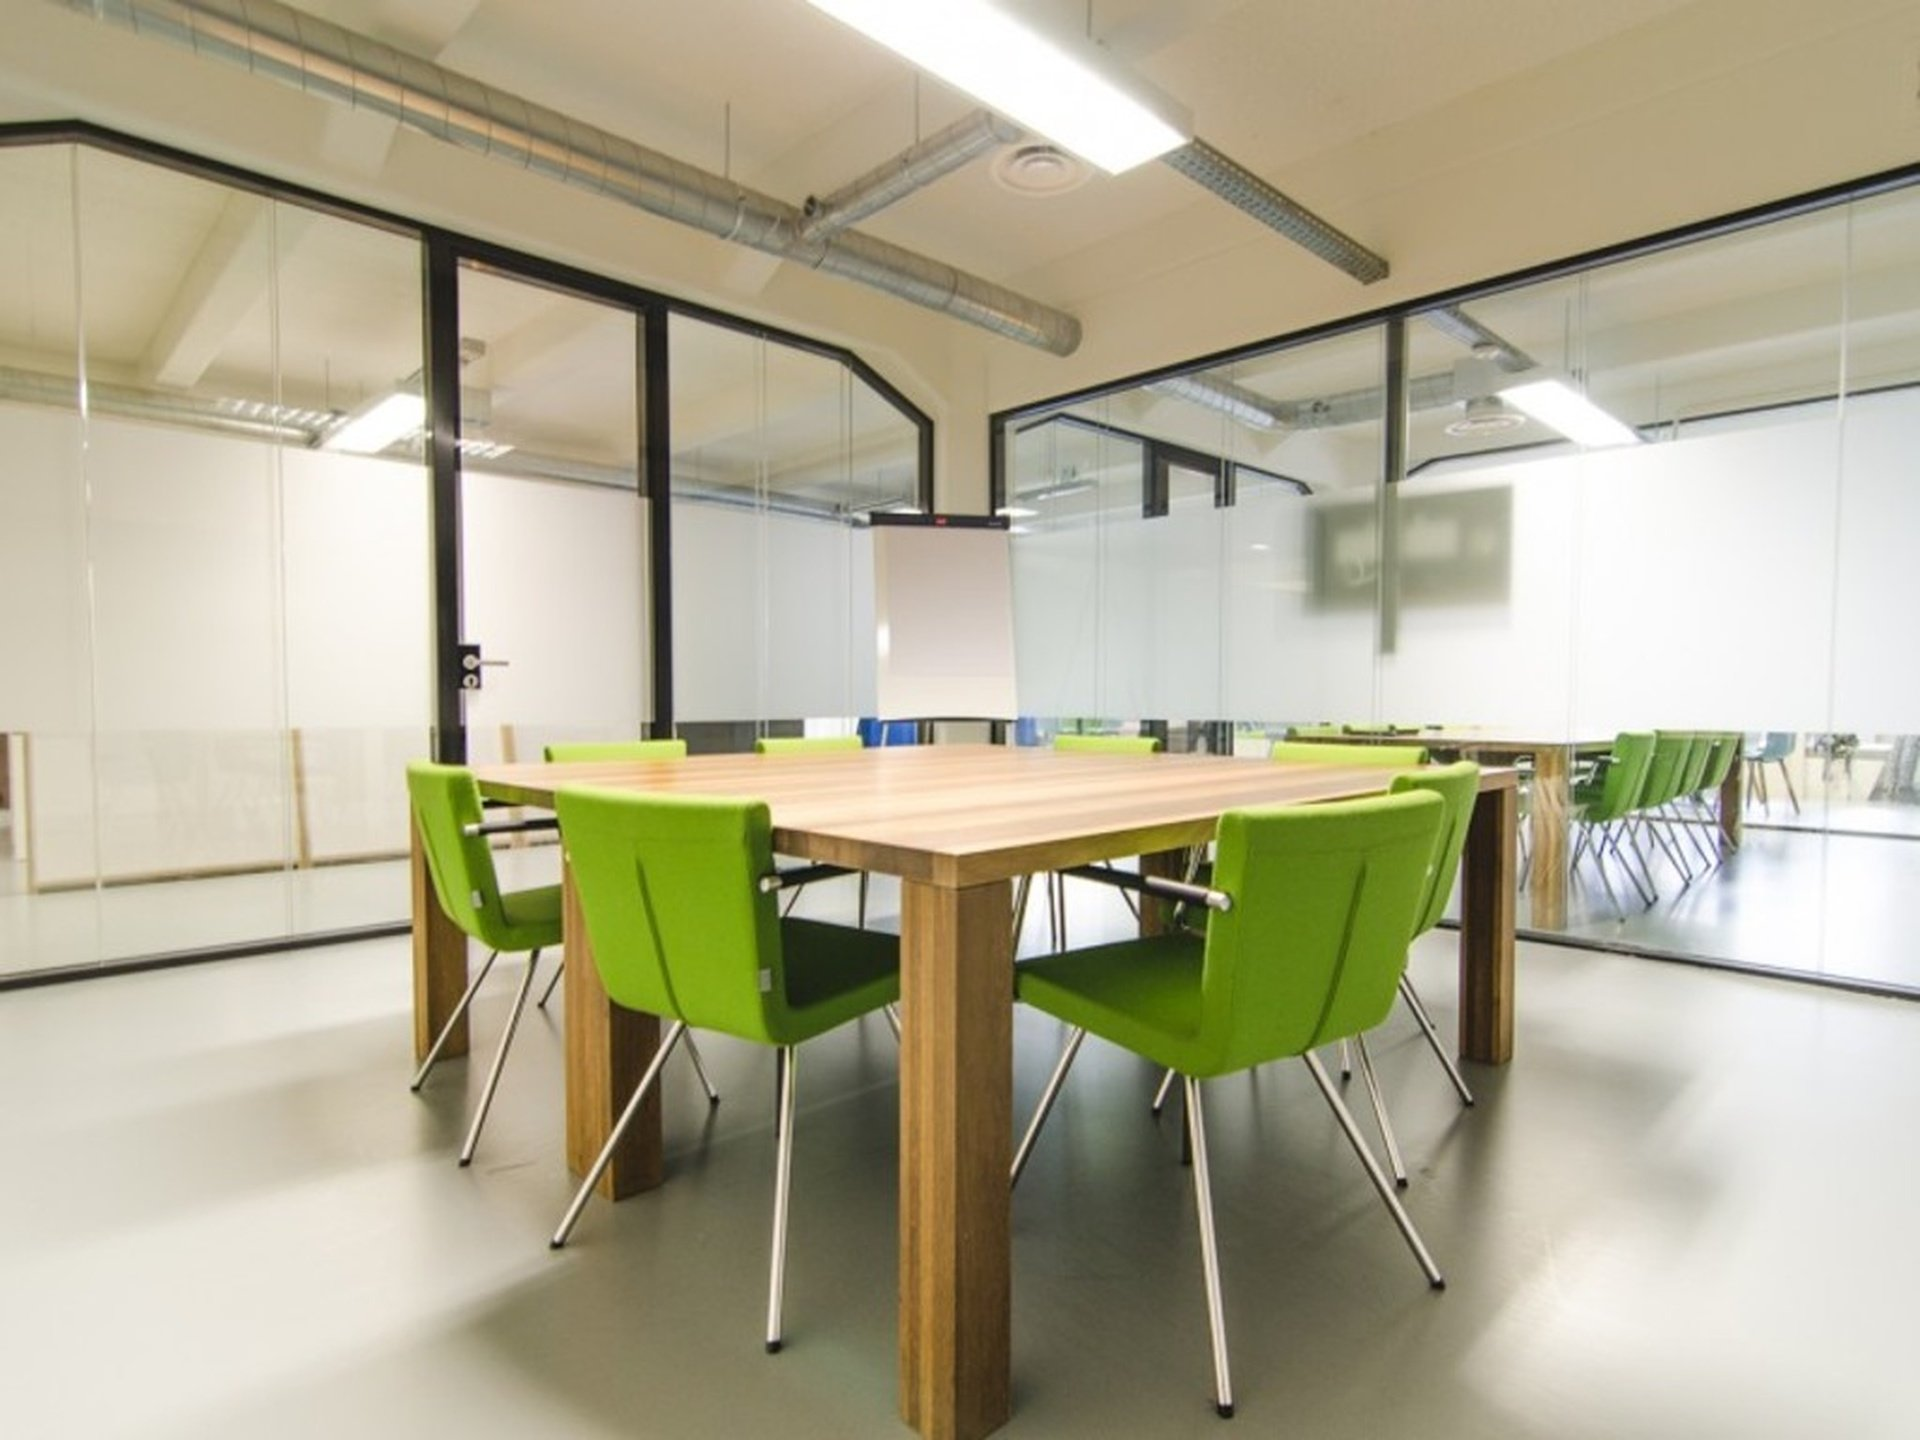 Amsterdam conference rooms Meetingraum HNK Amsterdam Houthavens - V1 image 0